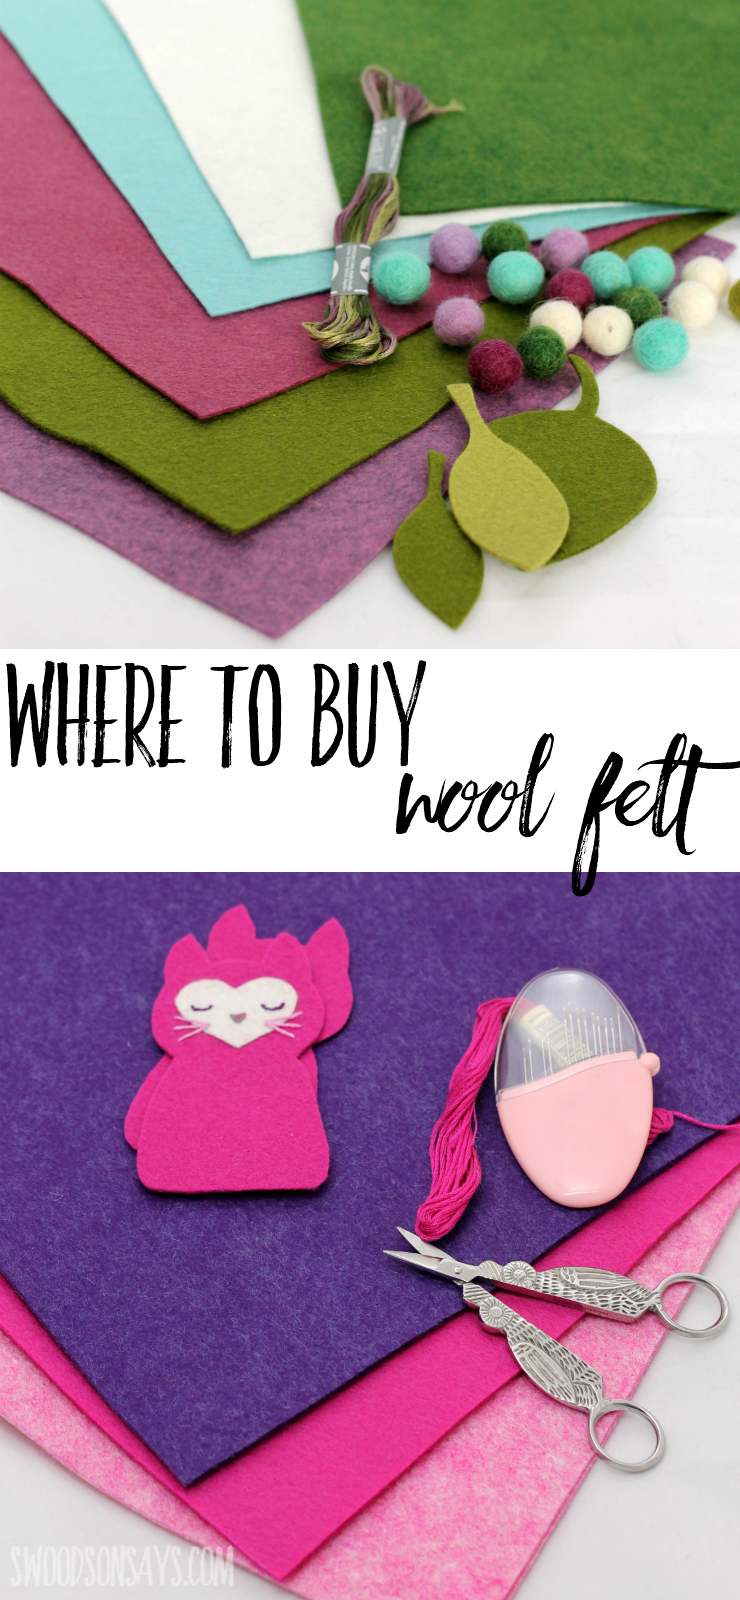 Looking to upgrade from cheapie, plastic felt? Check out tested, trusted online shops for where to buy wool felt online for all your embroidery and hand sewing projects. #woolfelt #embroidery #handsewing